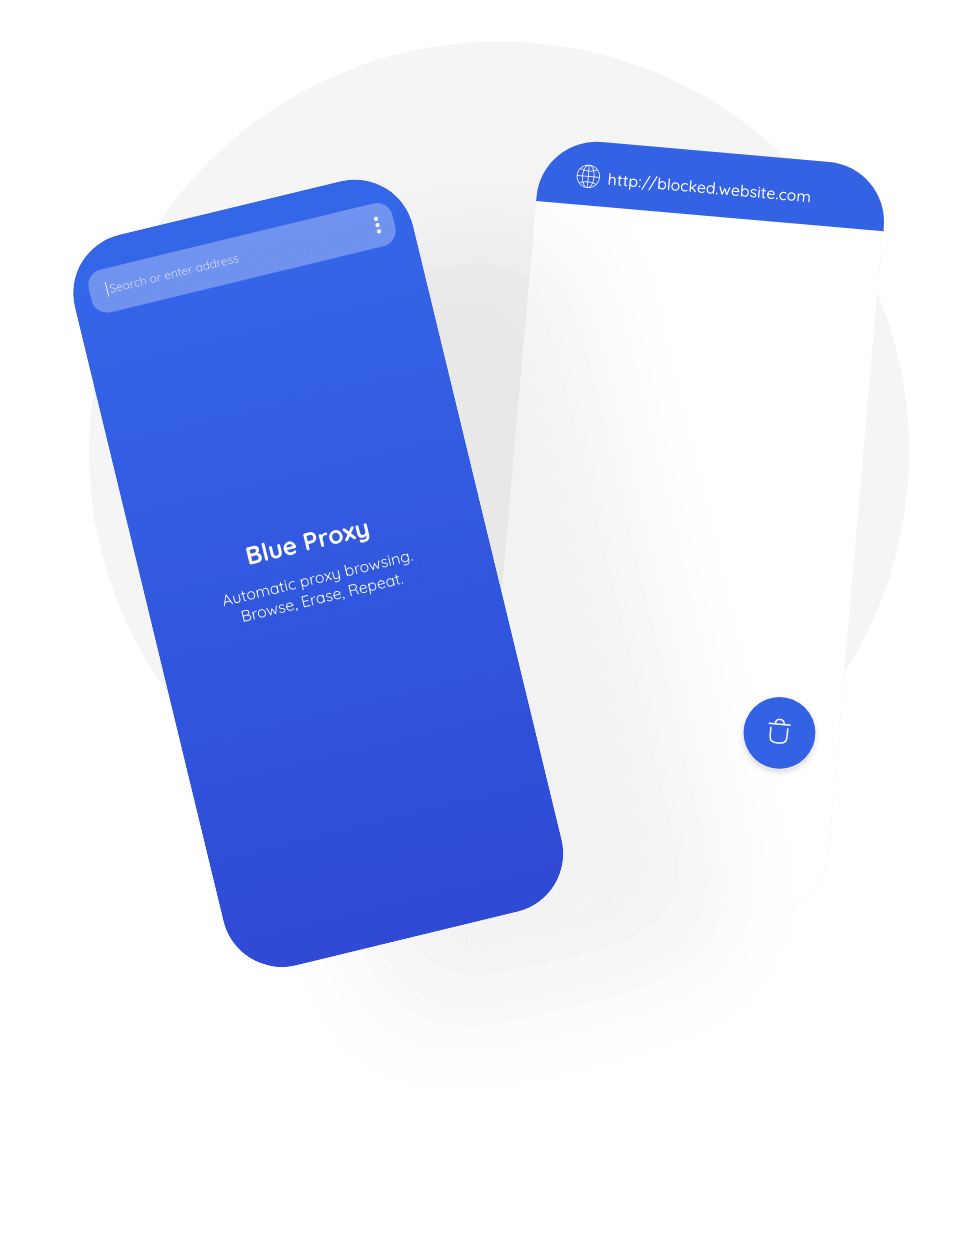 Blue Proxy App, Proxy, Android, Mobile